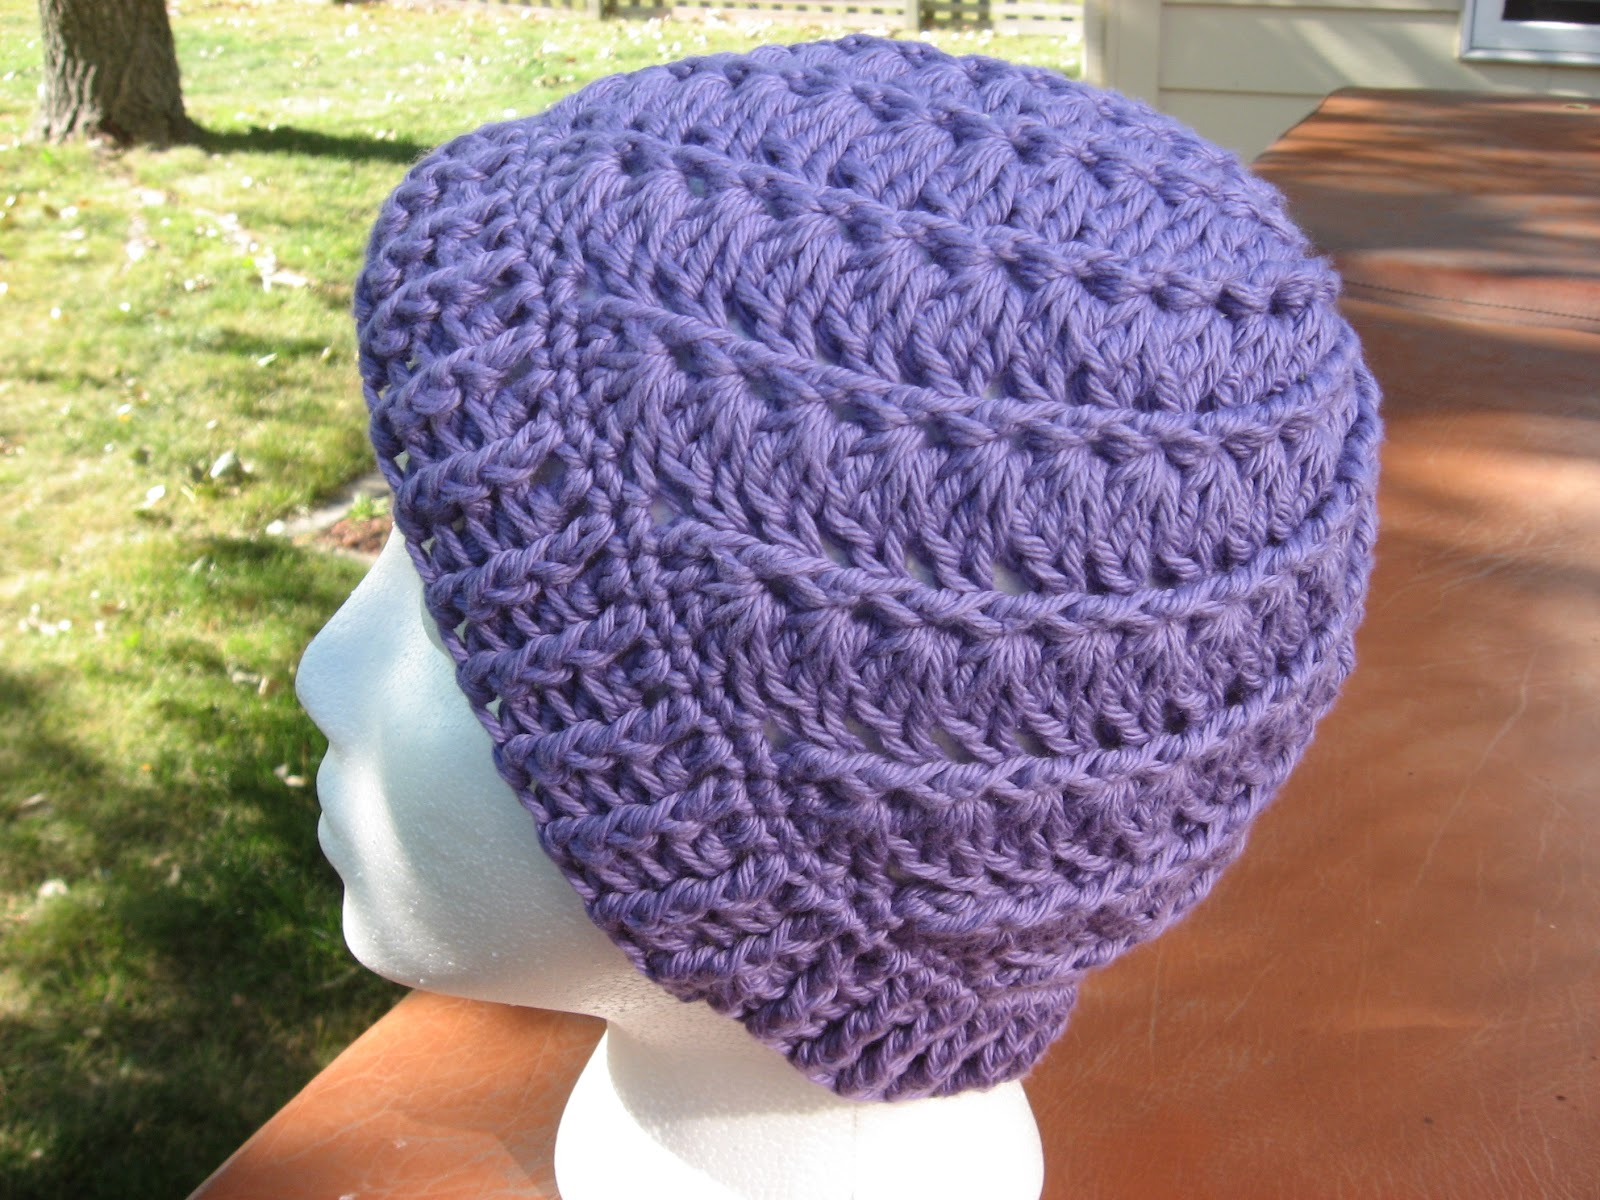 Crochet Patterns Hats For Cancer Patients : Crochet Projects: Chemo Hats Set #2